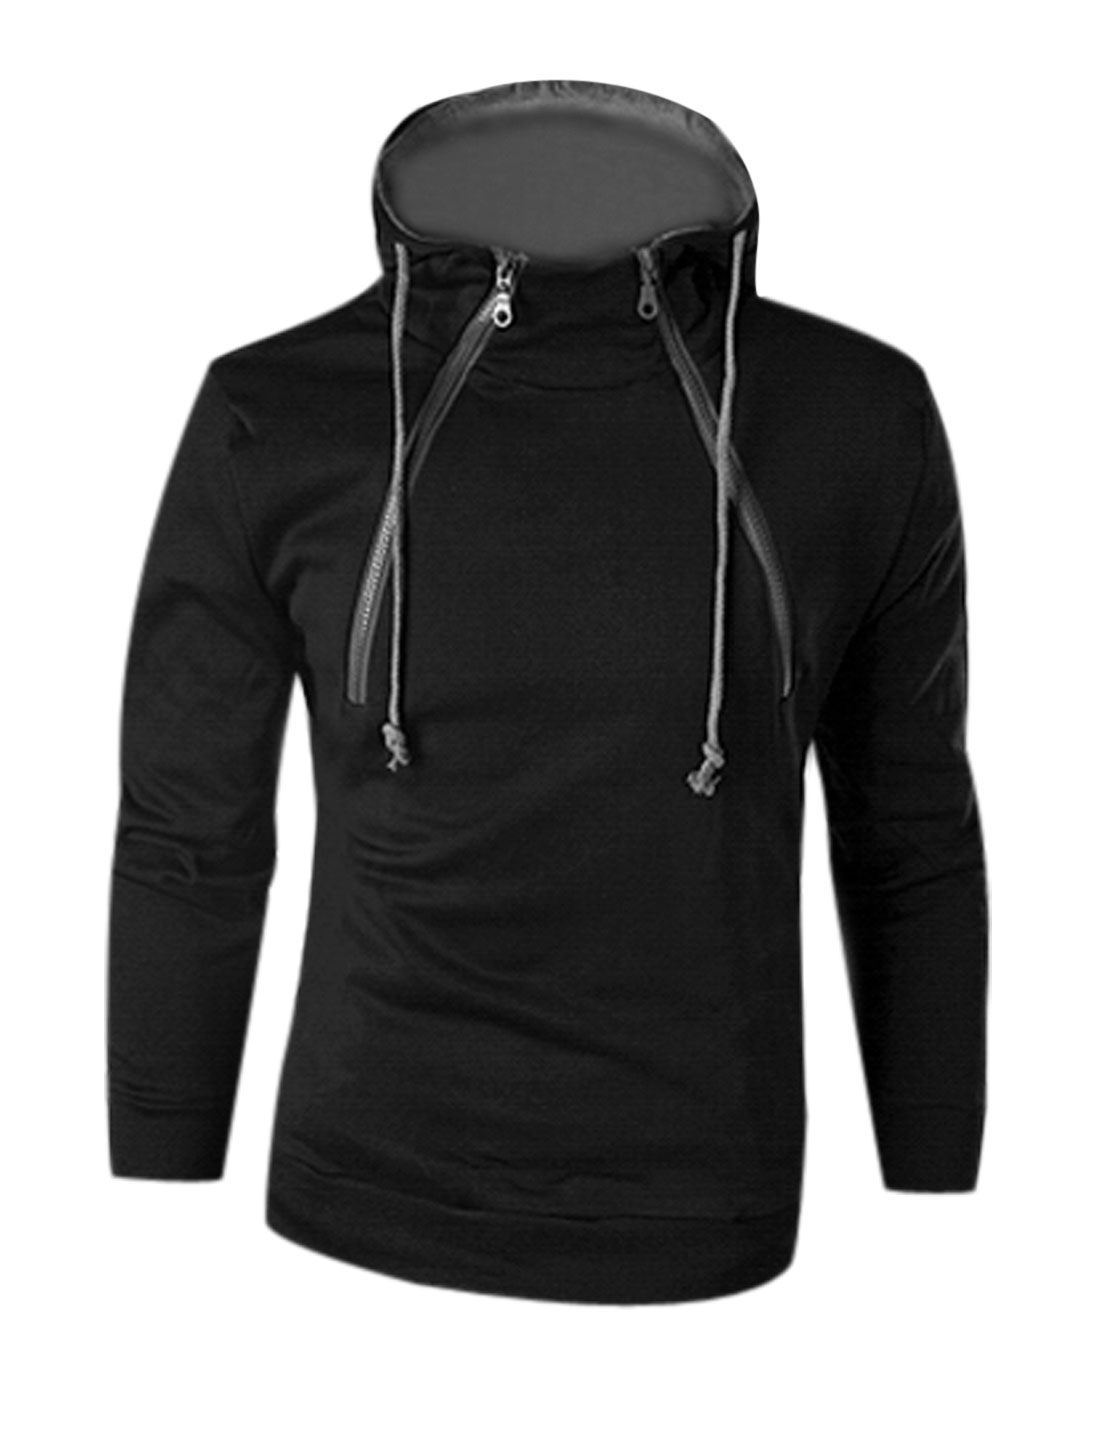 Man Black Drawstring Zipper Closure Front Hooded Sweatshirt M